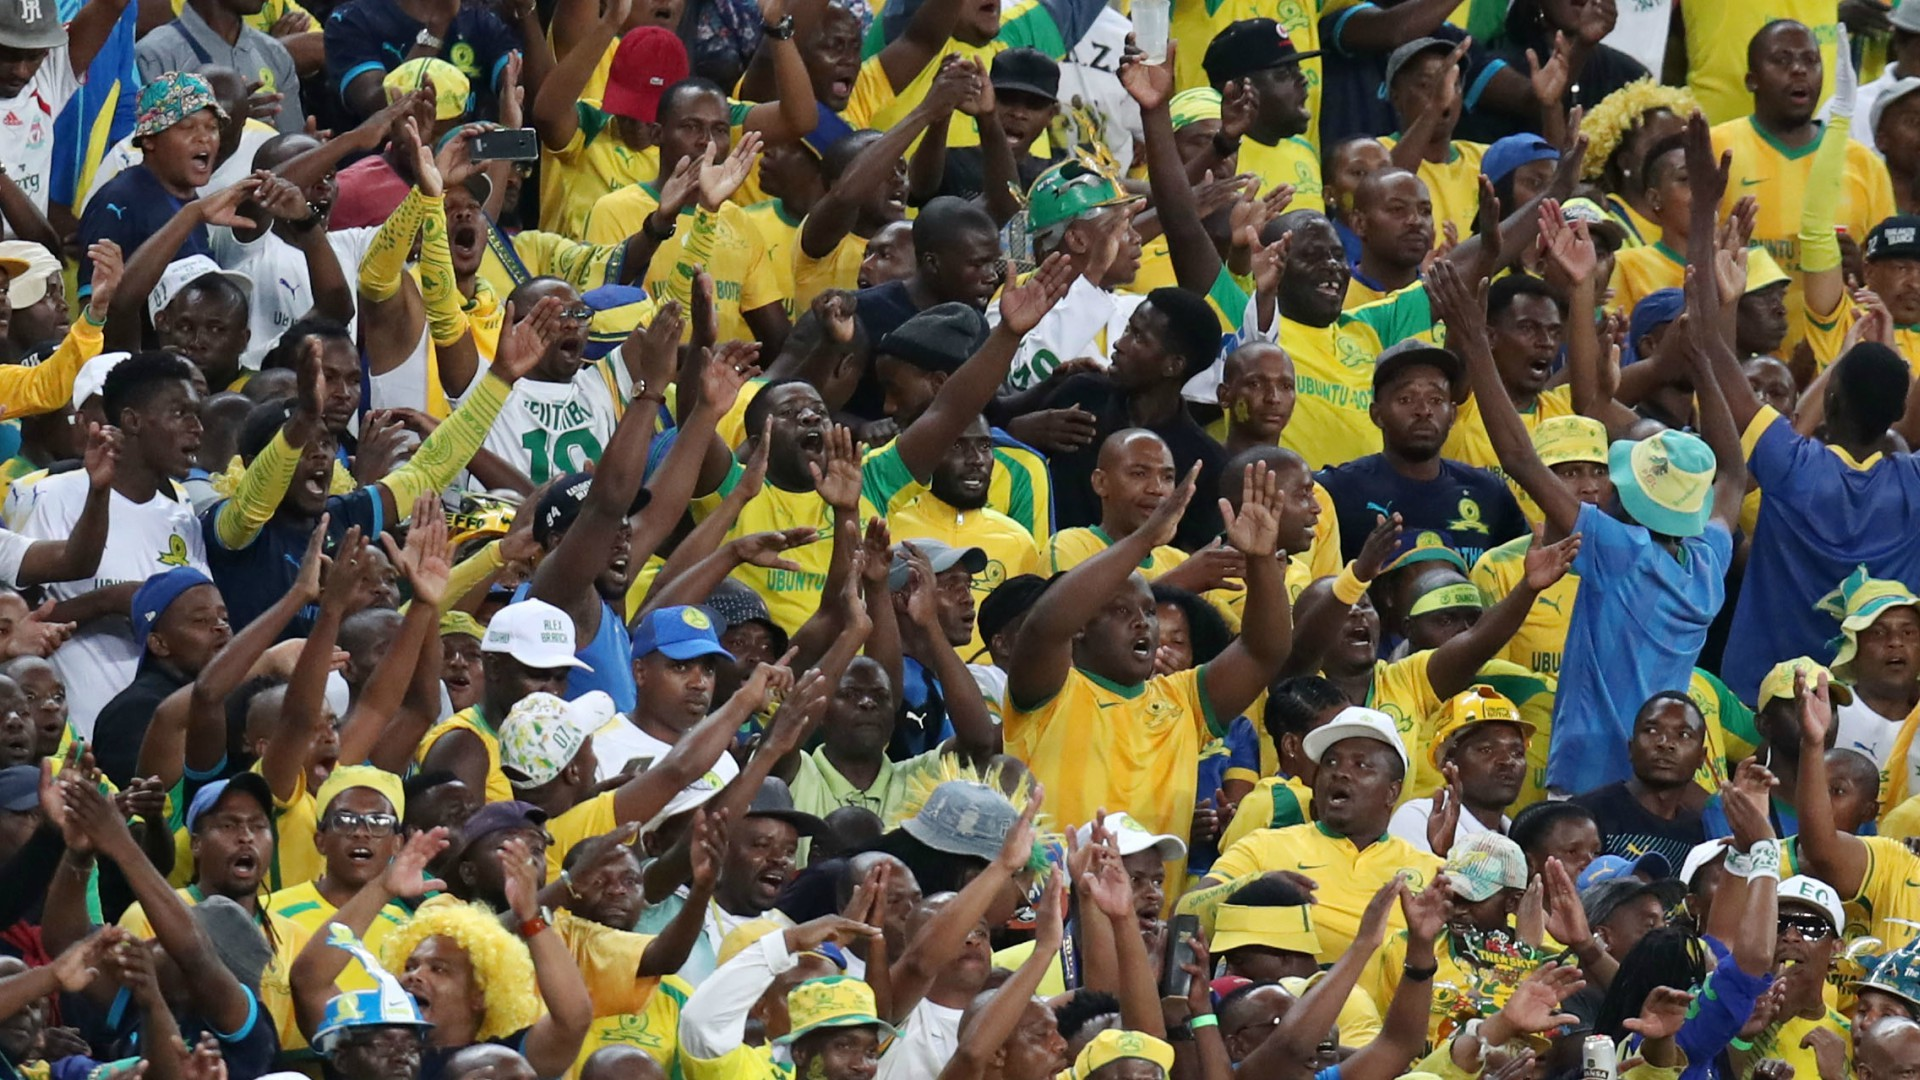 EXTRA TIME: Mamelodi Sundowns fans celebrate Caf Champions League progress